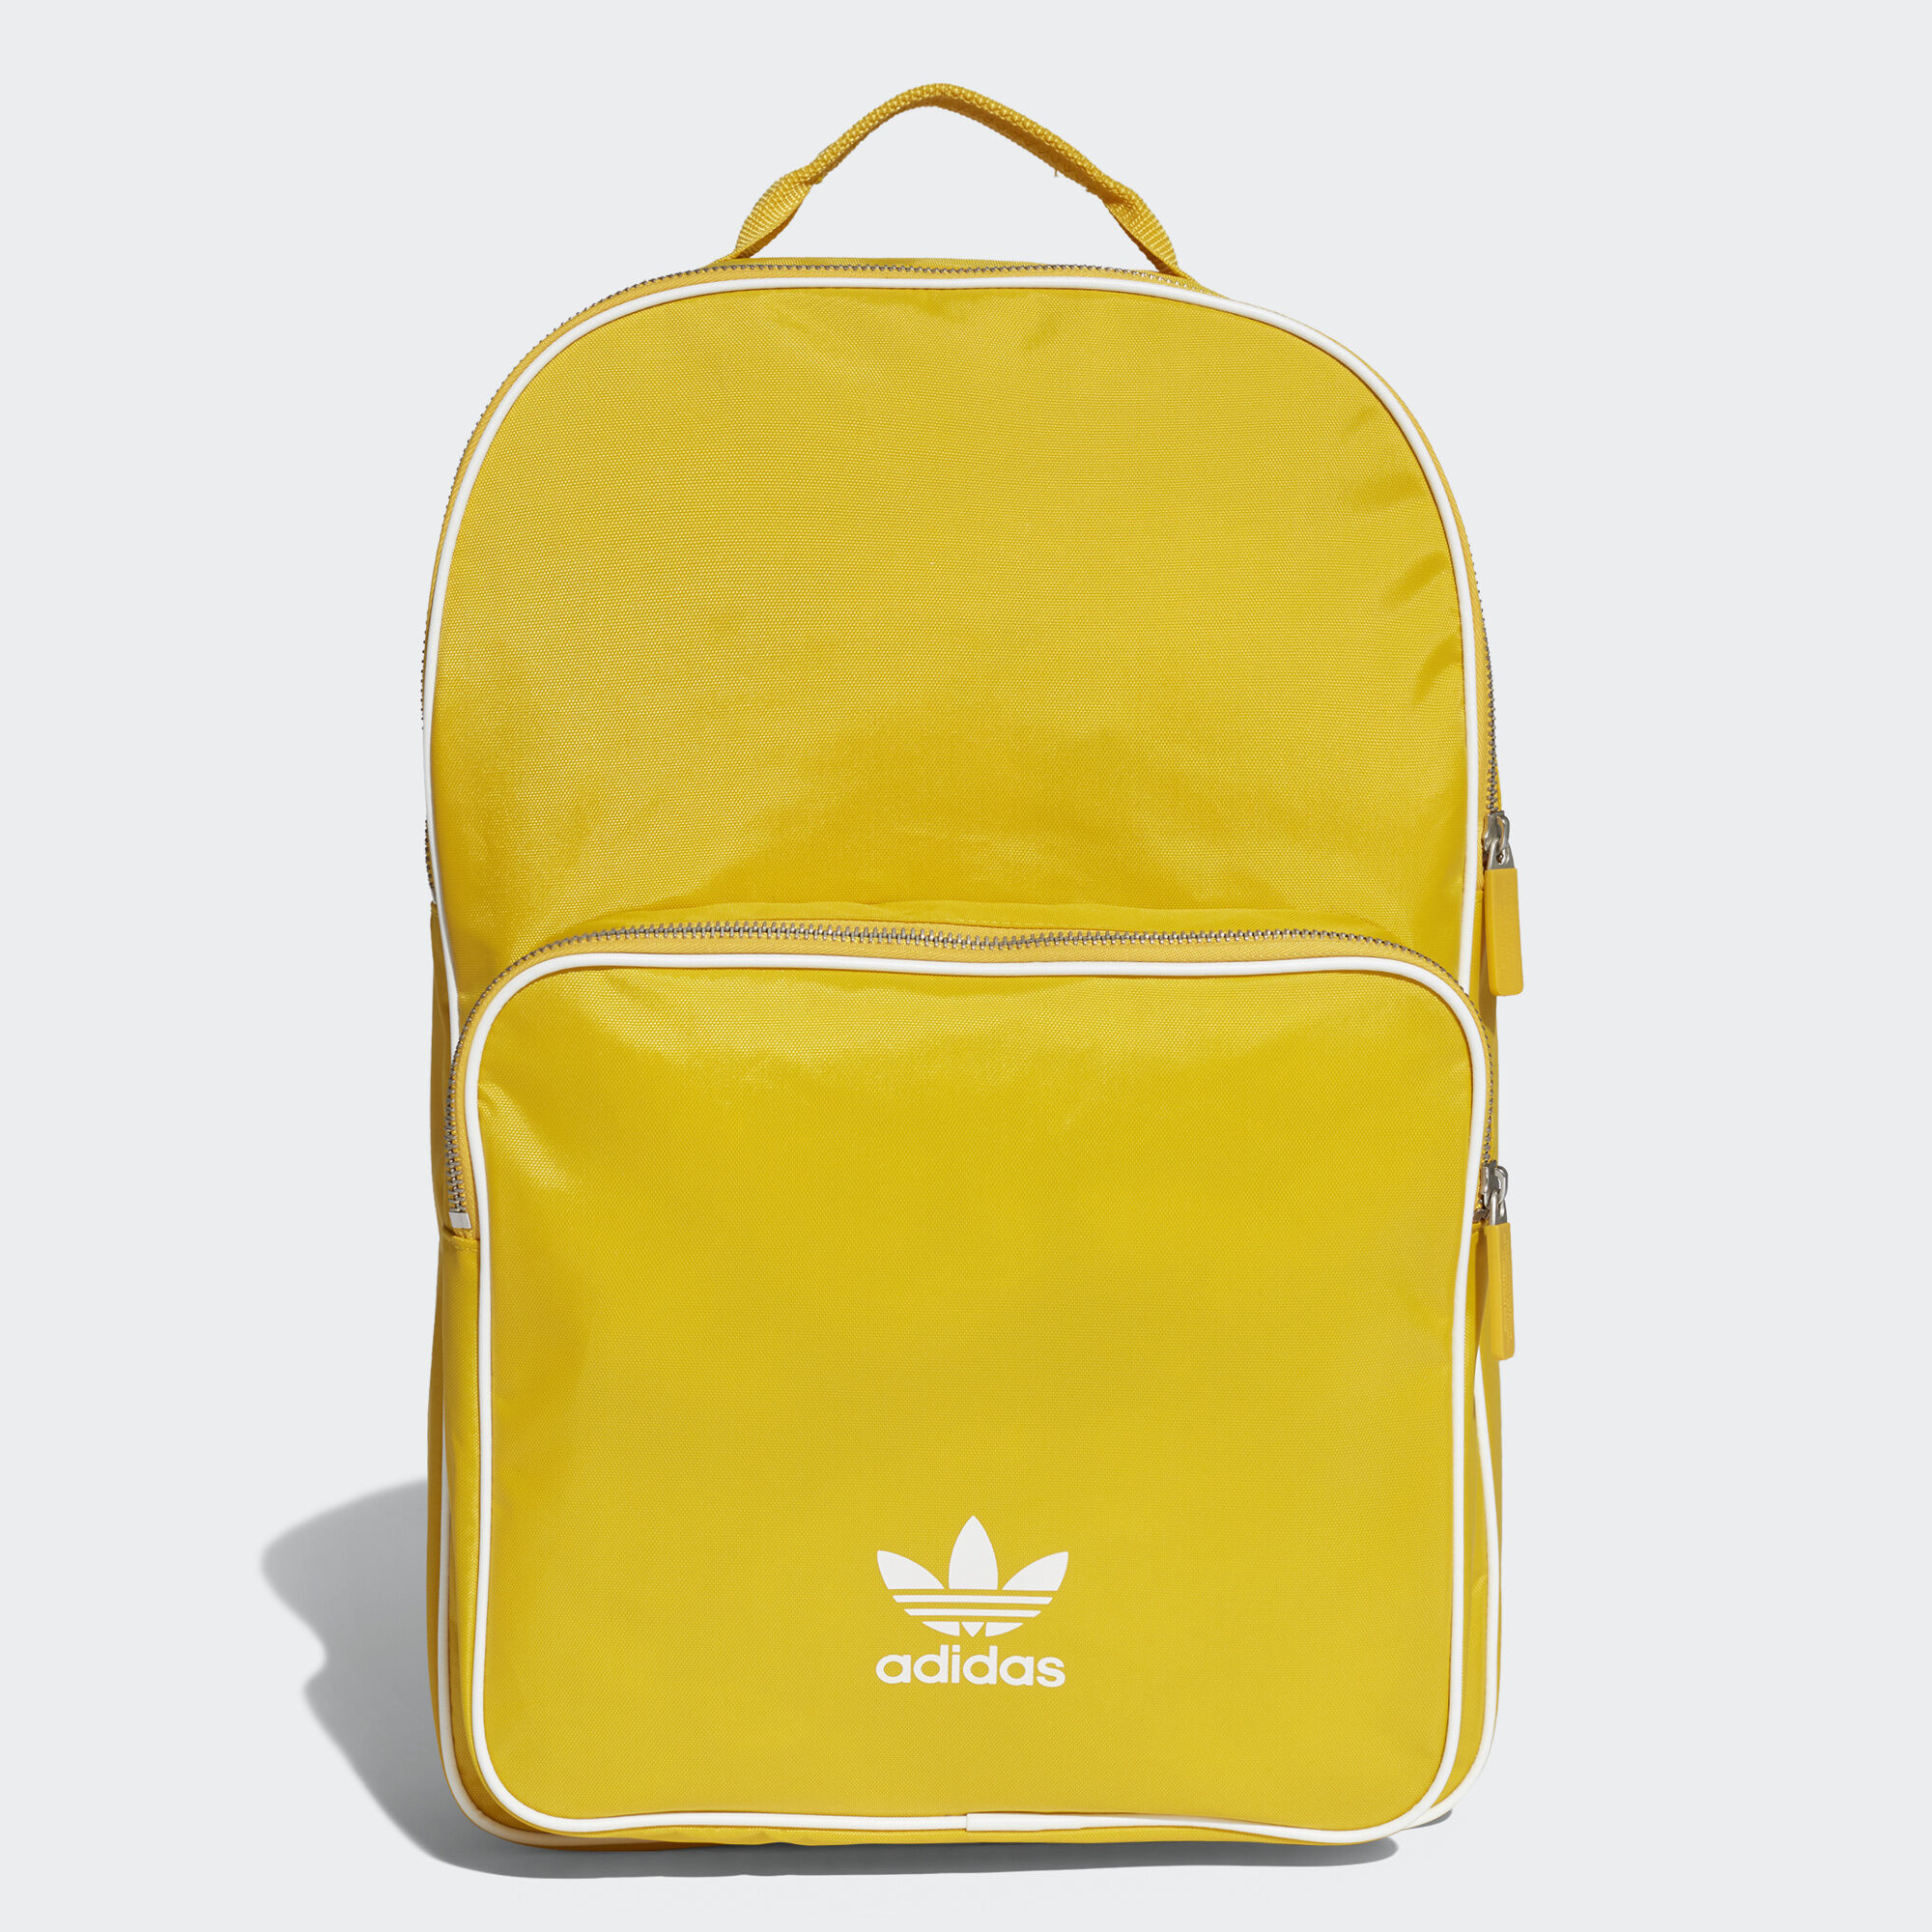 Adidasclassic Backpack Yellow Adidas Asia Middle East